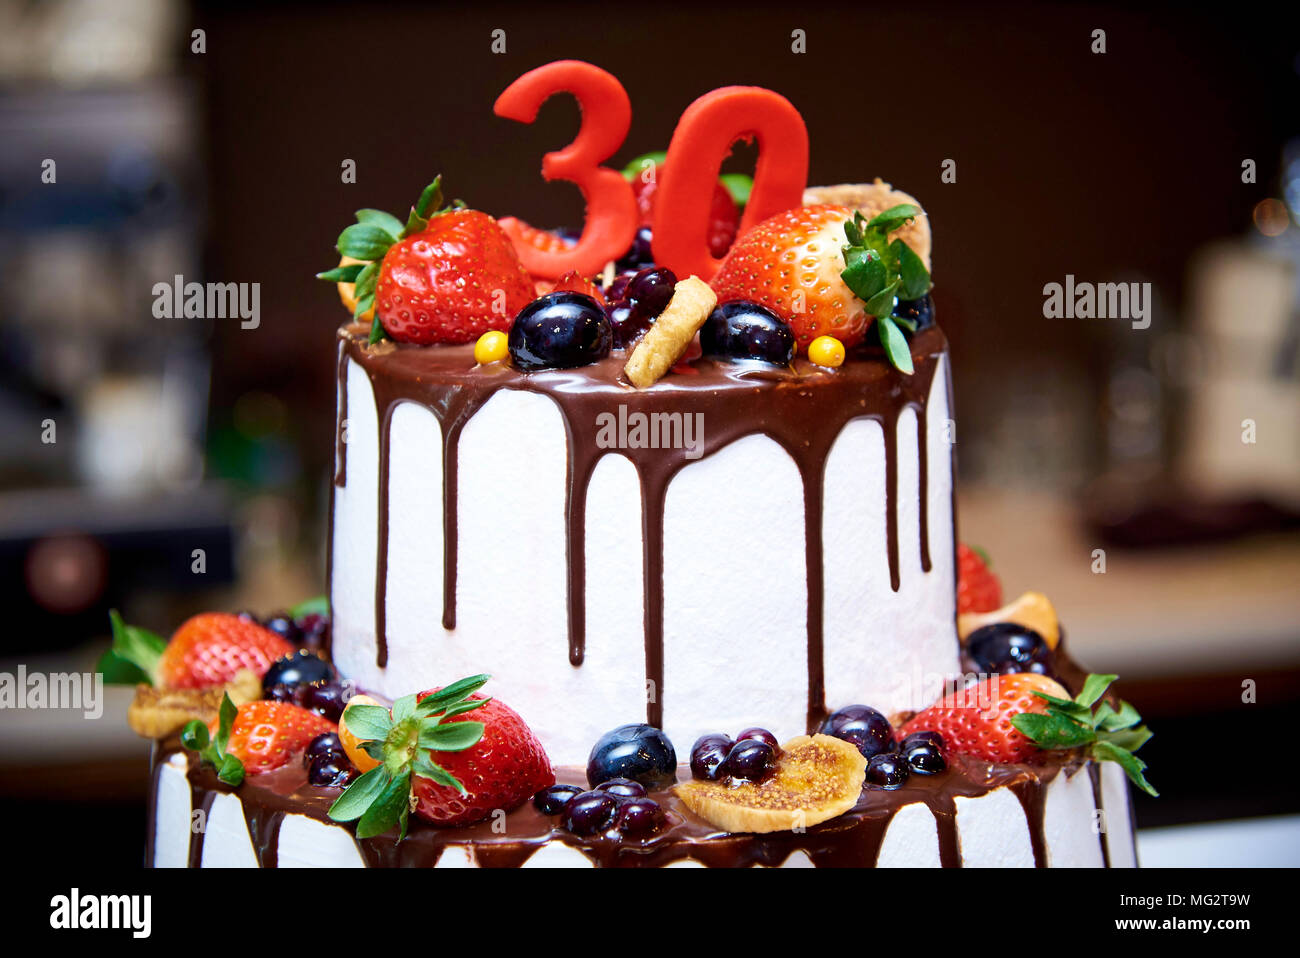 Two-tiered white cake with fresh fruits and chocolate decorated with a figure of thirty close-ups. - Stock Image